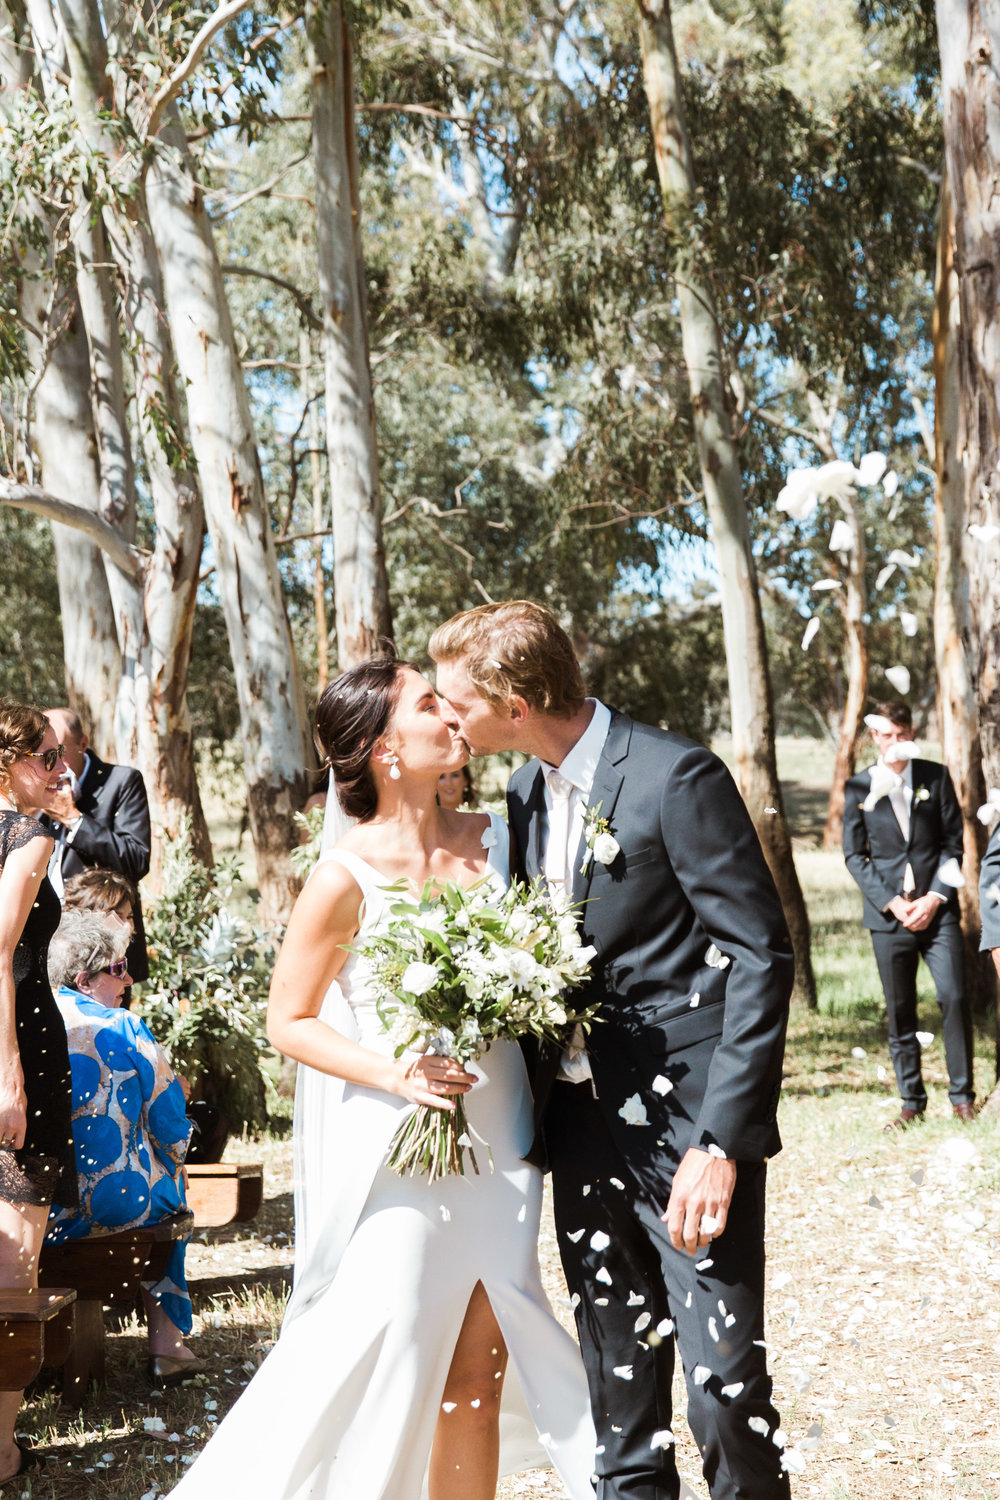 00034- Olive Tree Mediterranean Wedding in Mudgee NSW Australia Fine Art Film Wedding Lifestyle Photographer Sheri McMahon_.jpg